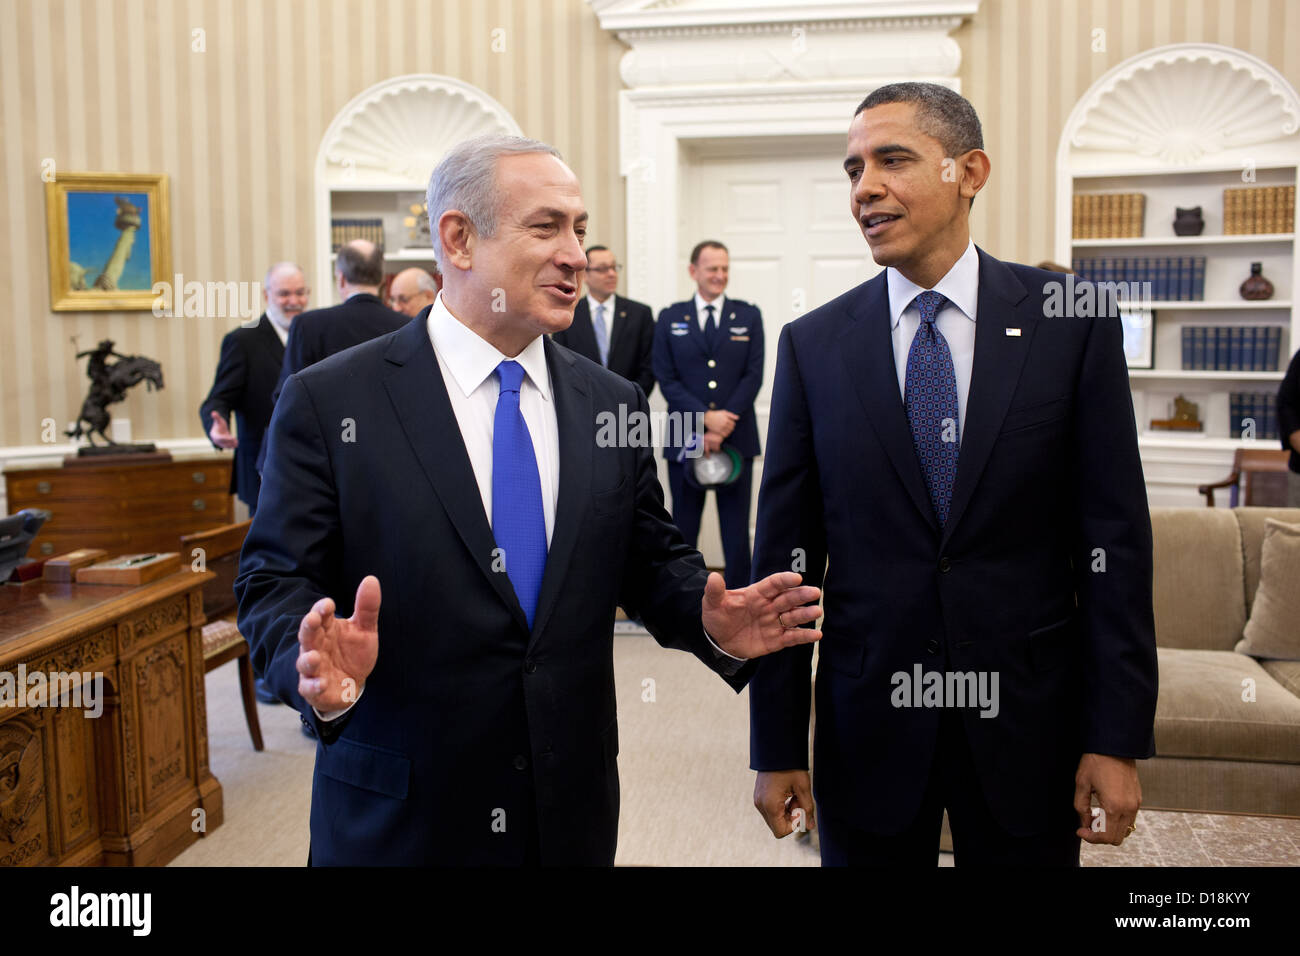 President Barack Obama and Prime Minister Benjamin Netanyahu of Israel talk before their bilateral meeting in the - Stock Image